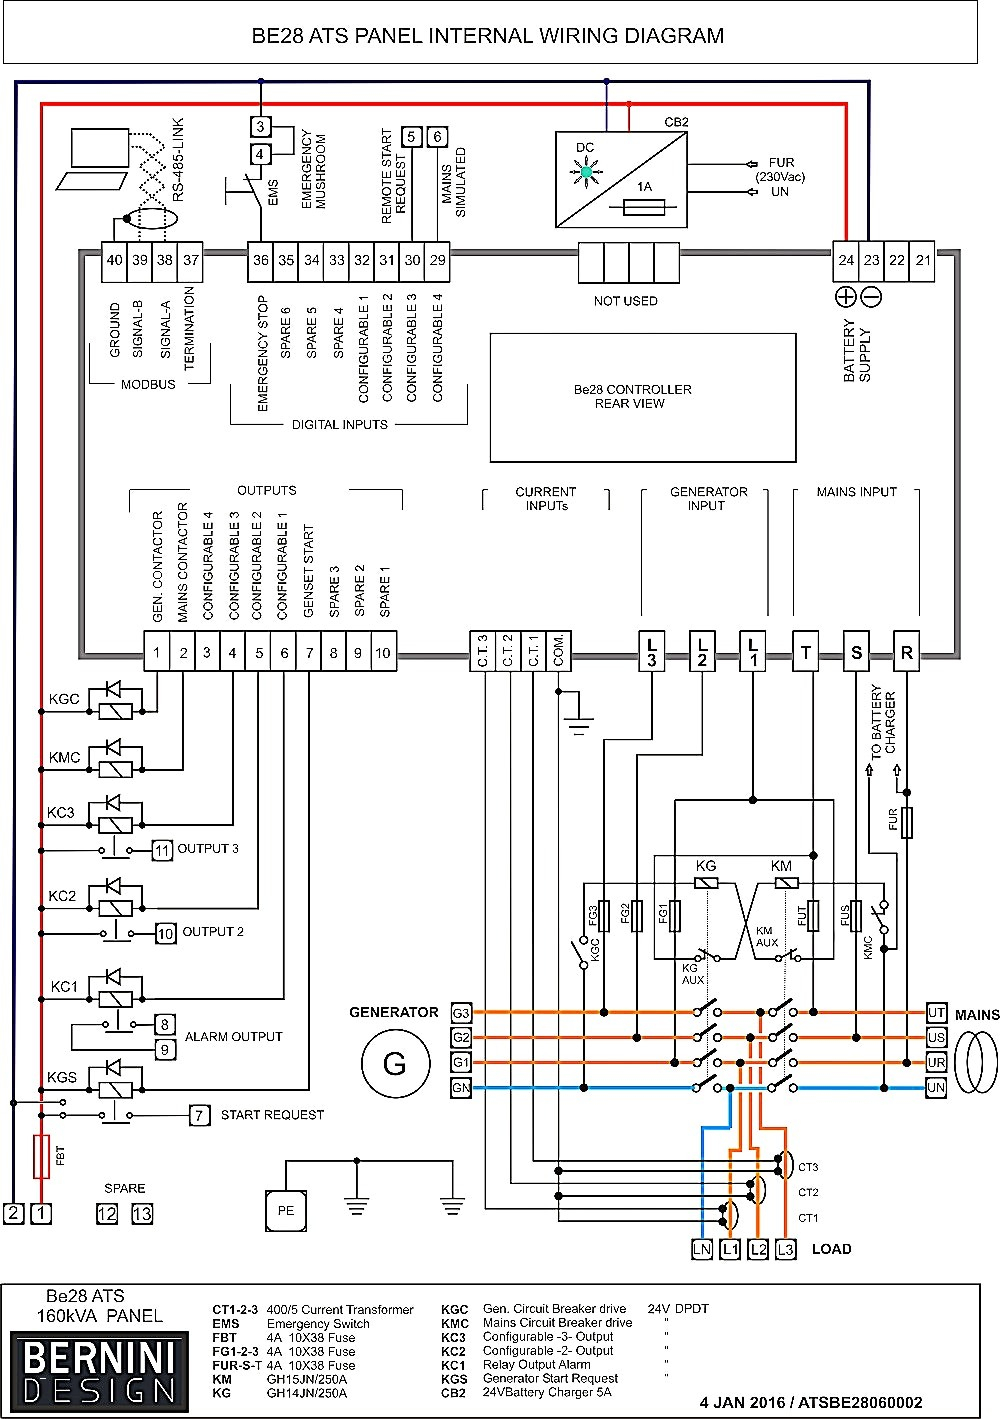 Generac 6333 Wiring Diagram Collection